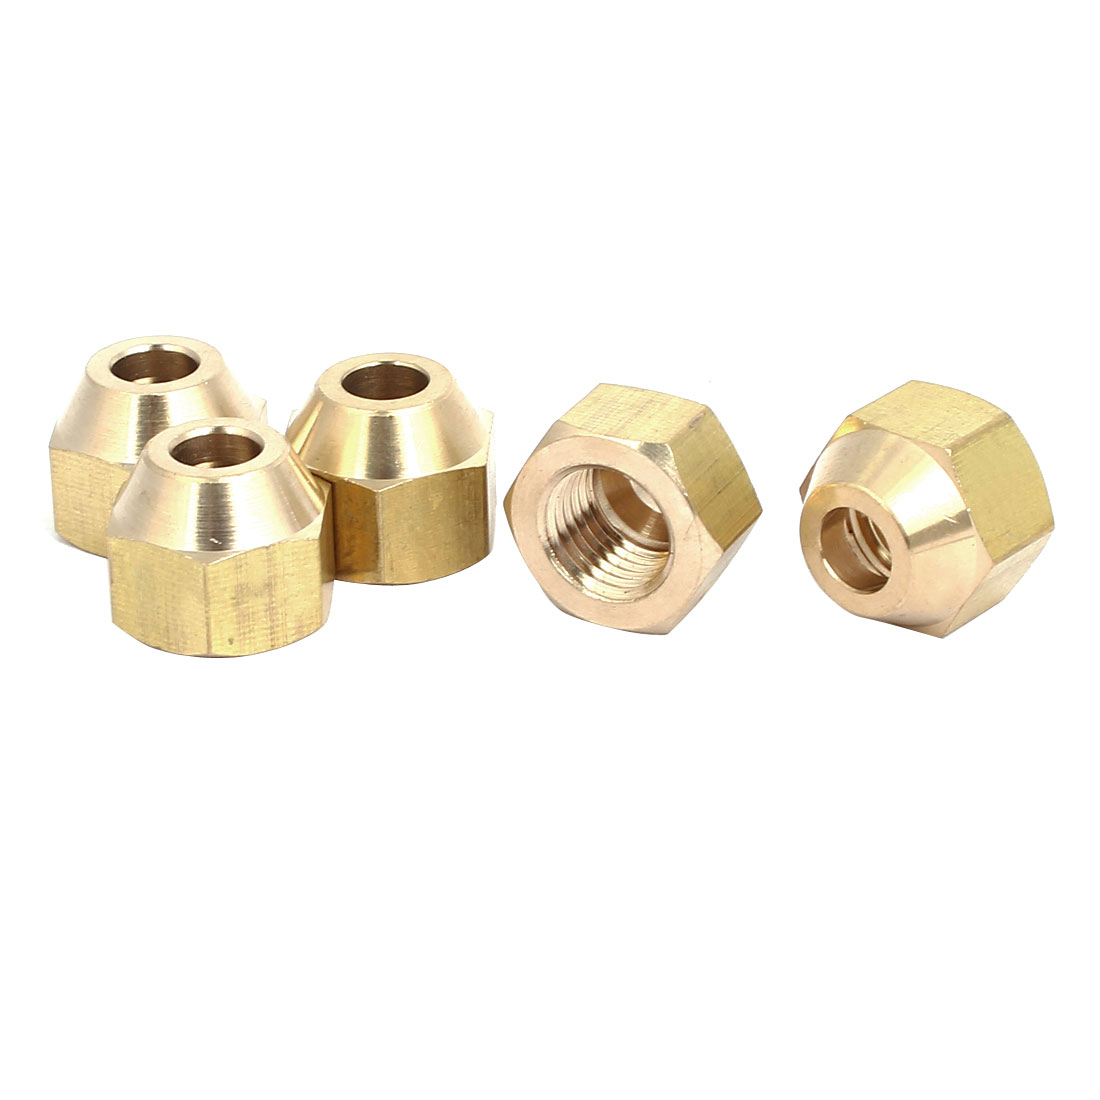 1/4BSP Brass Flare Nuts Air Conditioner Parts Fittings 5pcs for 6mm Dia Pipe